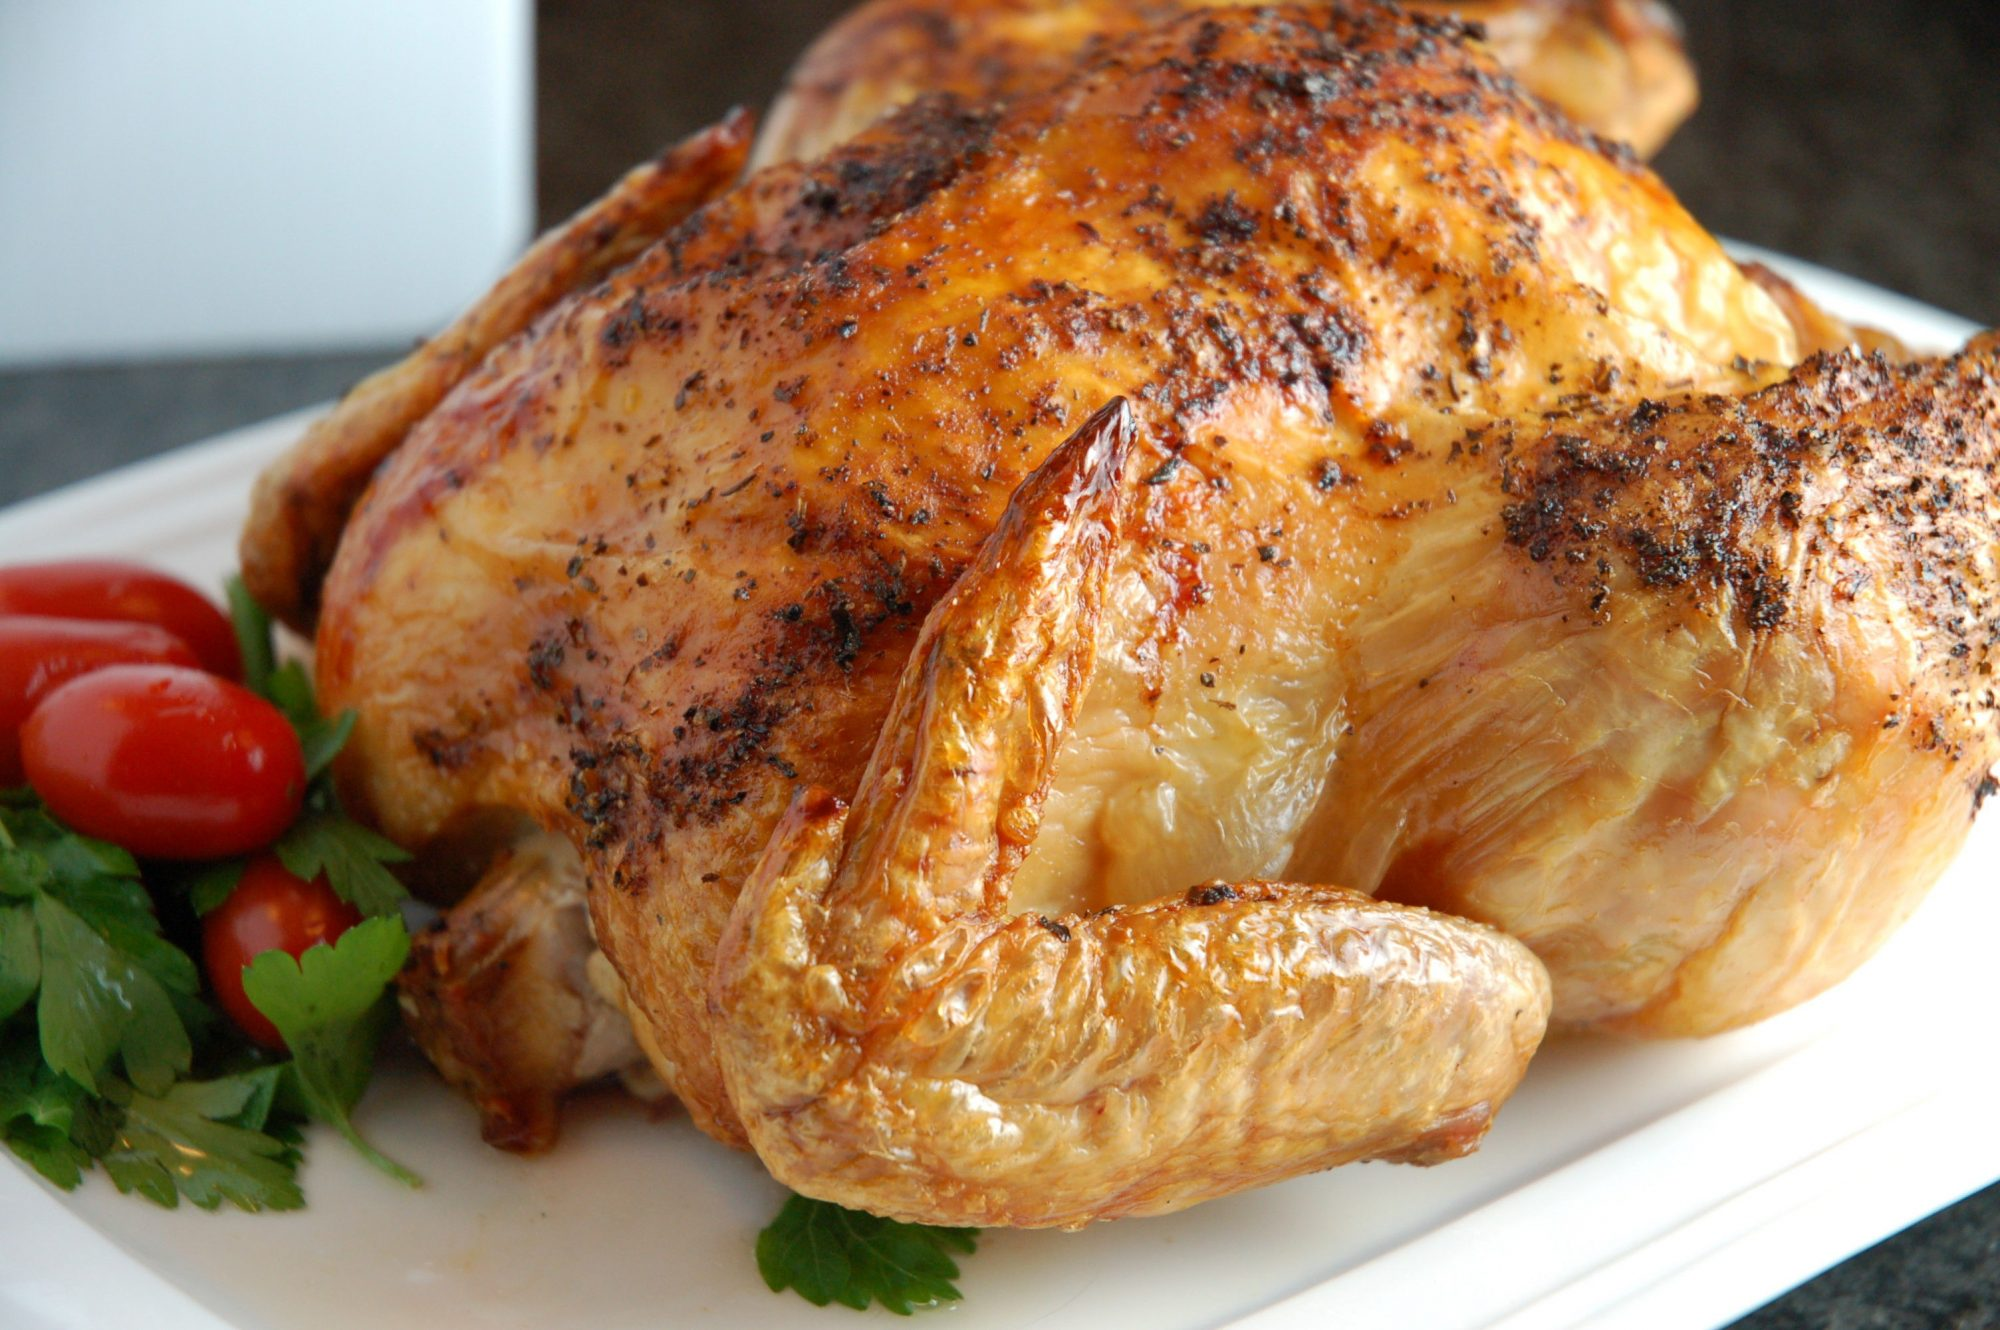 A spice-rubbed roast chicken garnished with parsley and grape tomatoes